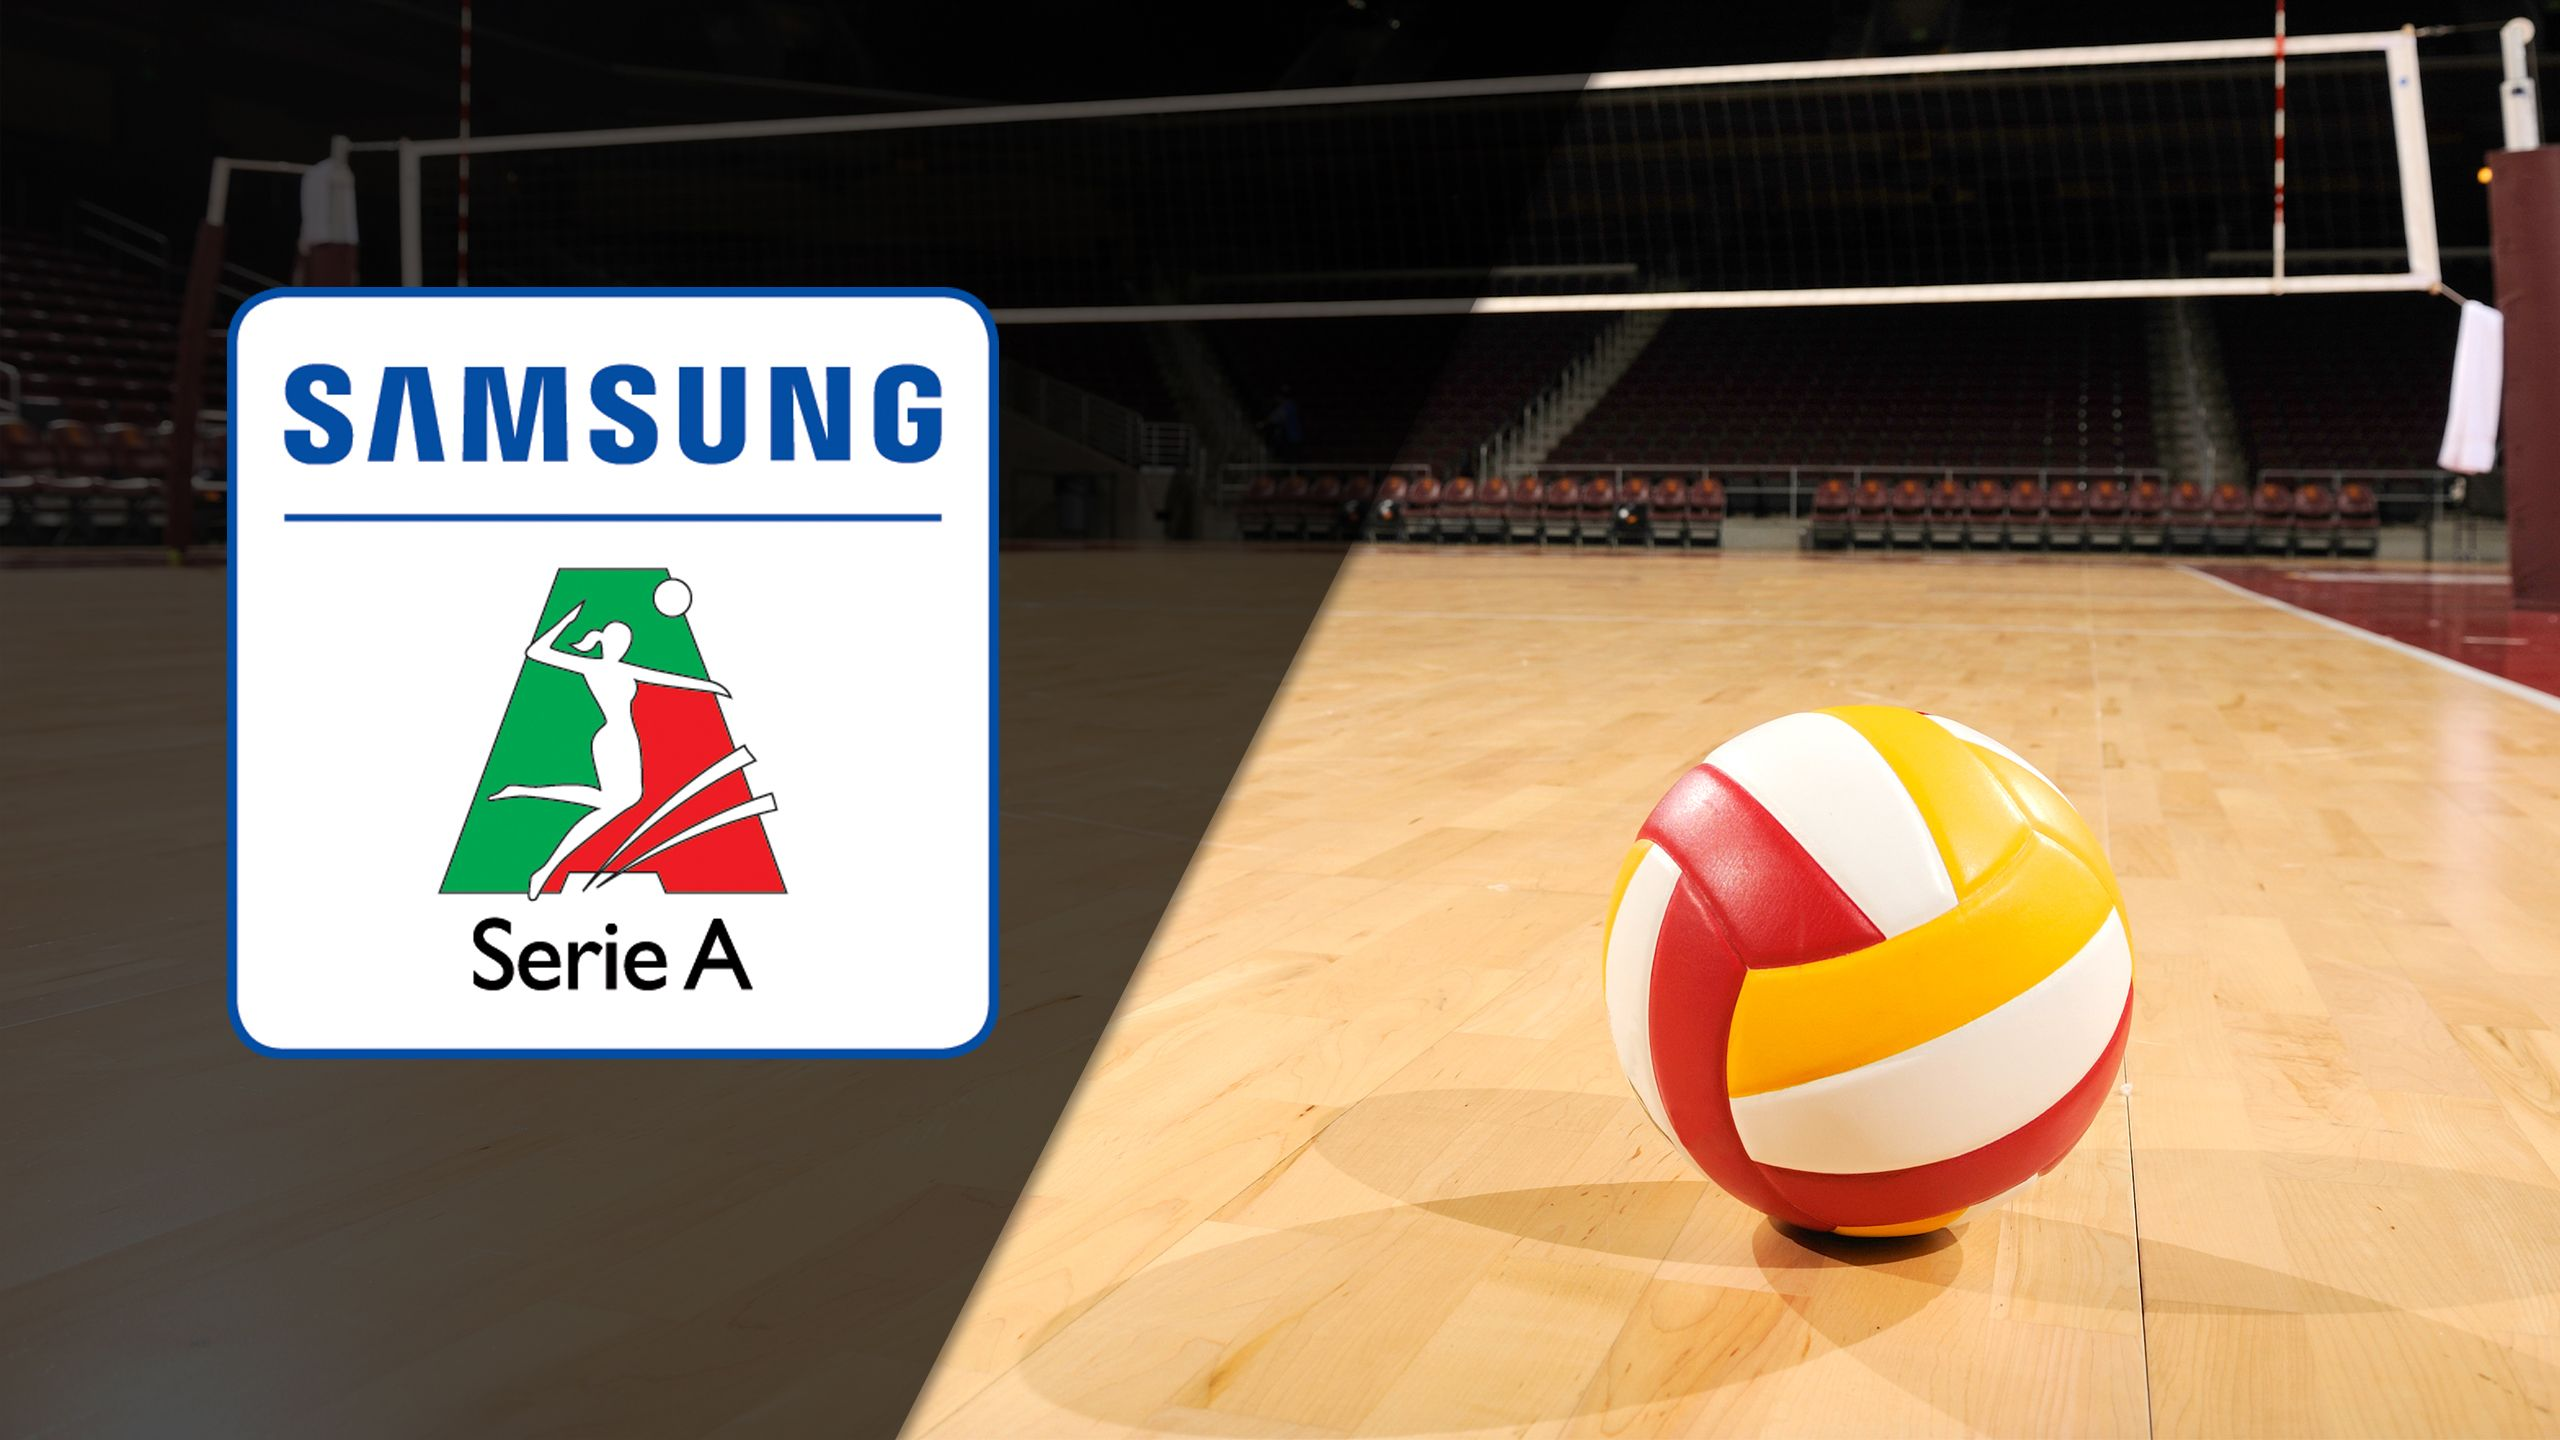 Imoco Volley Conegliano vs. Igor Gorgonzola Novara (Serie A Women's Volleyball)